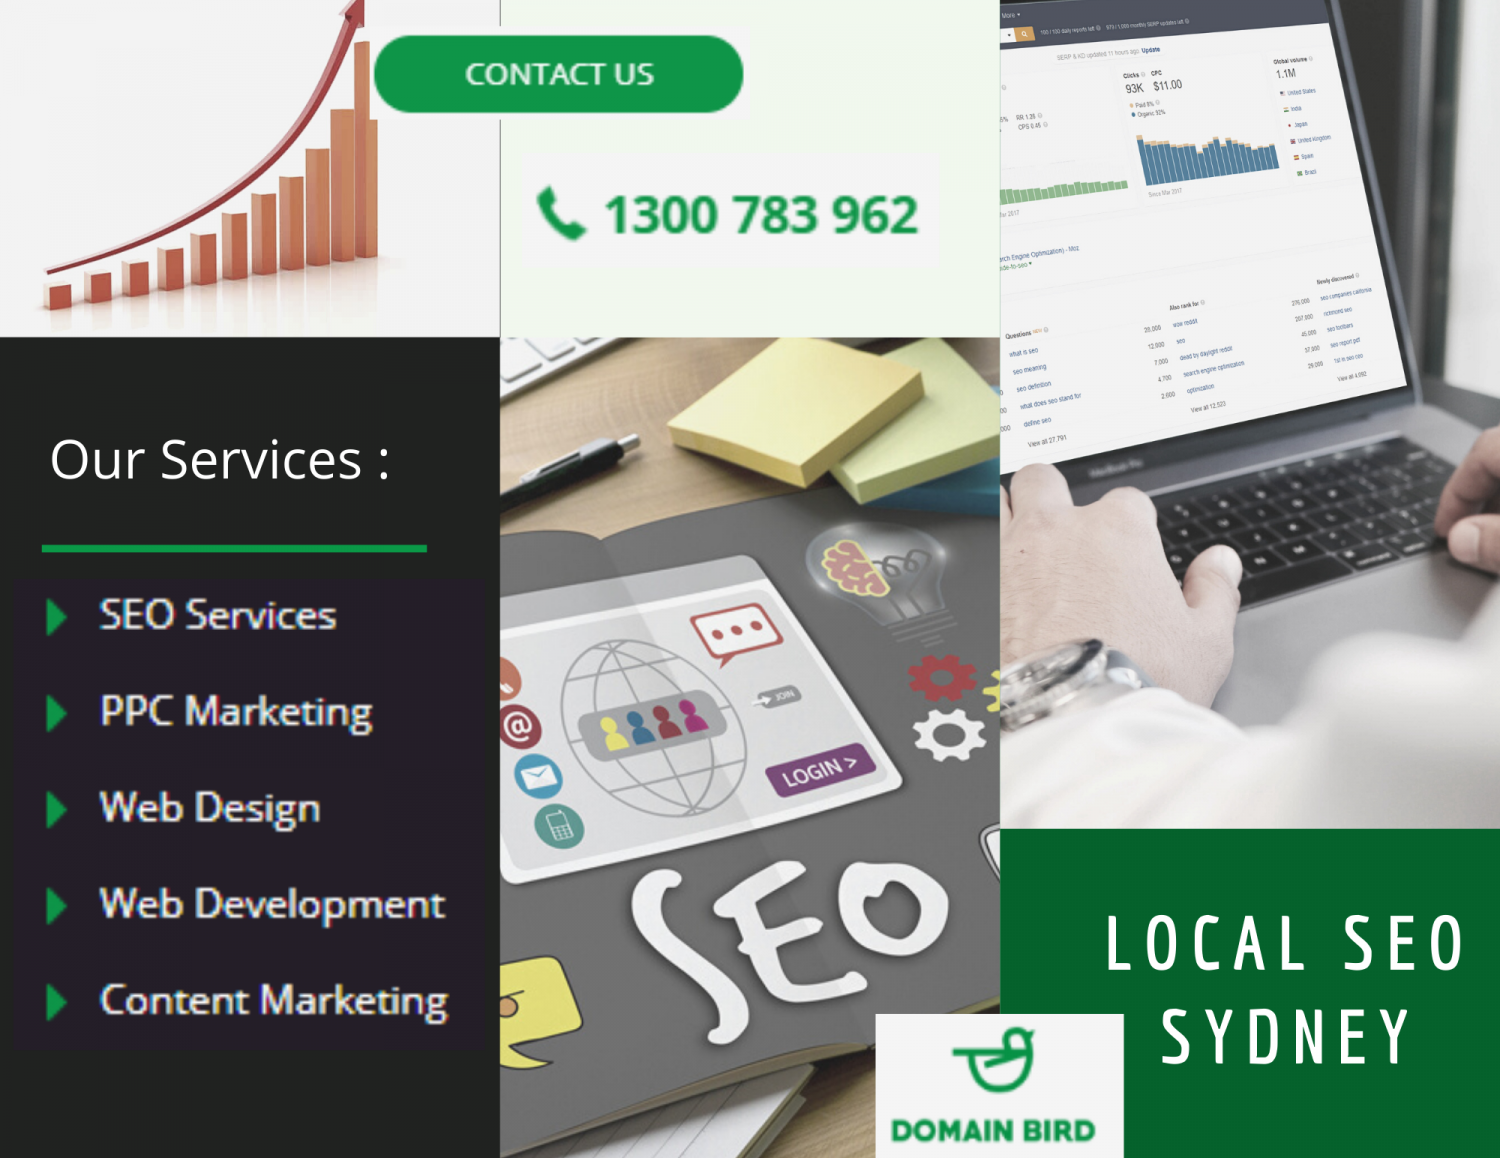 Local SEO Sydney Infographic